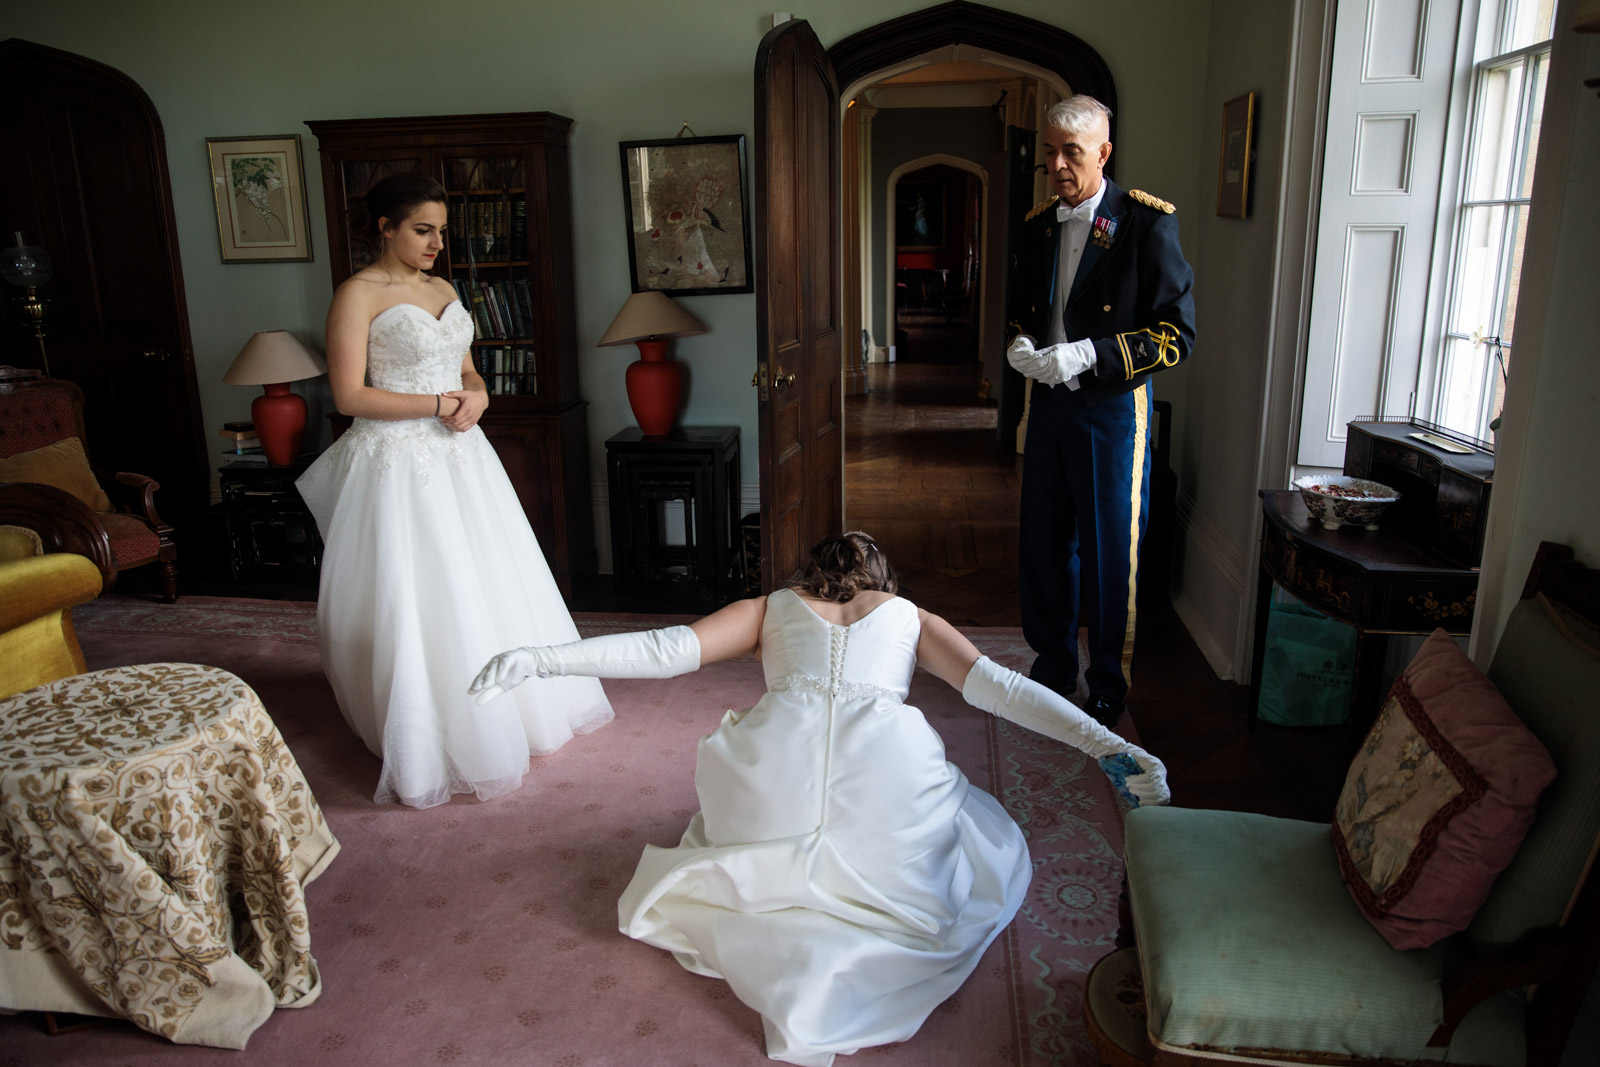 A debutante practices her dip curtsy at Boughton Monchelsea Place ahead of the Queen Charlotte's Ball on September 09, 2017 in Maidstone.